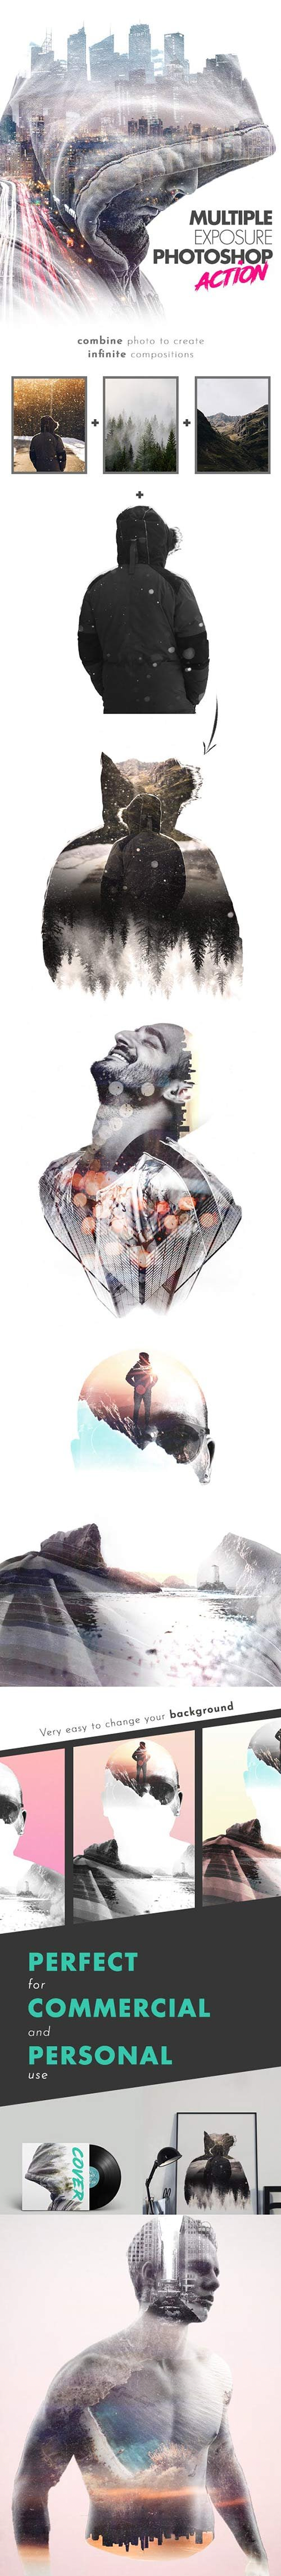 GraphicRiver - Multiple Exposure Photoshop Action 22613240